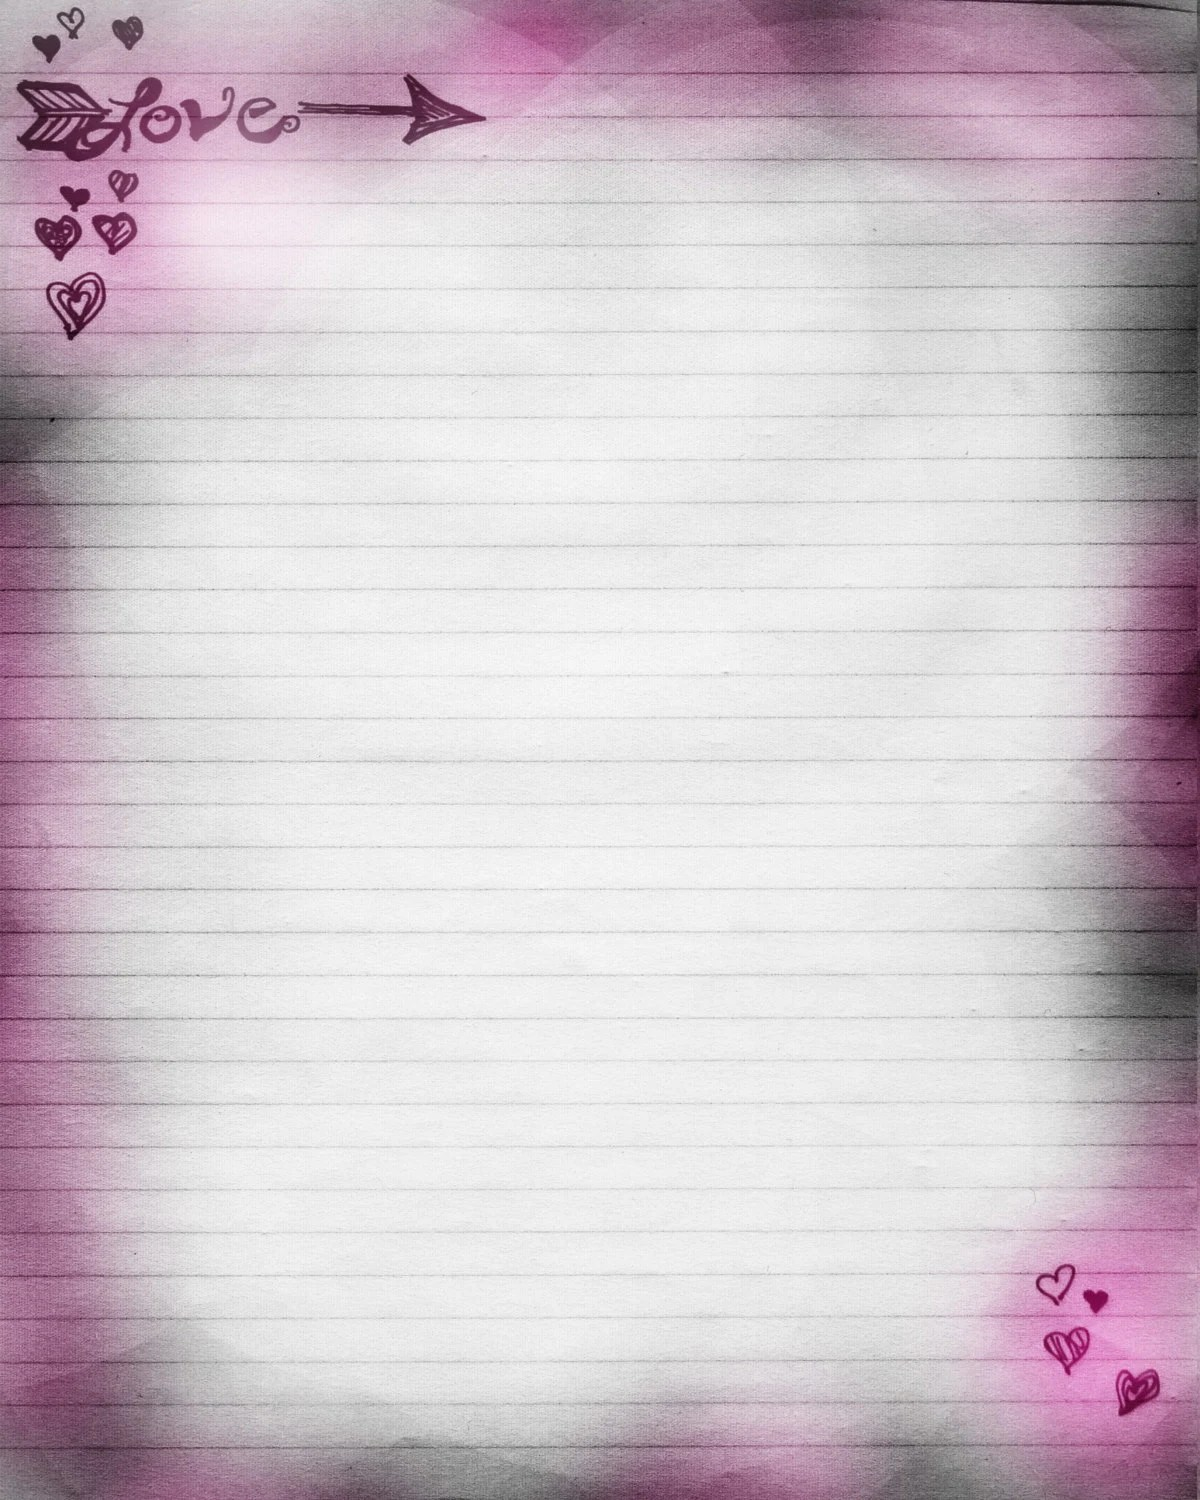 Printable Journal Page Love Hearts Lined Stationery 8 X 10